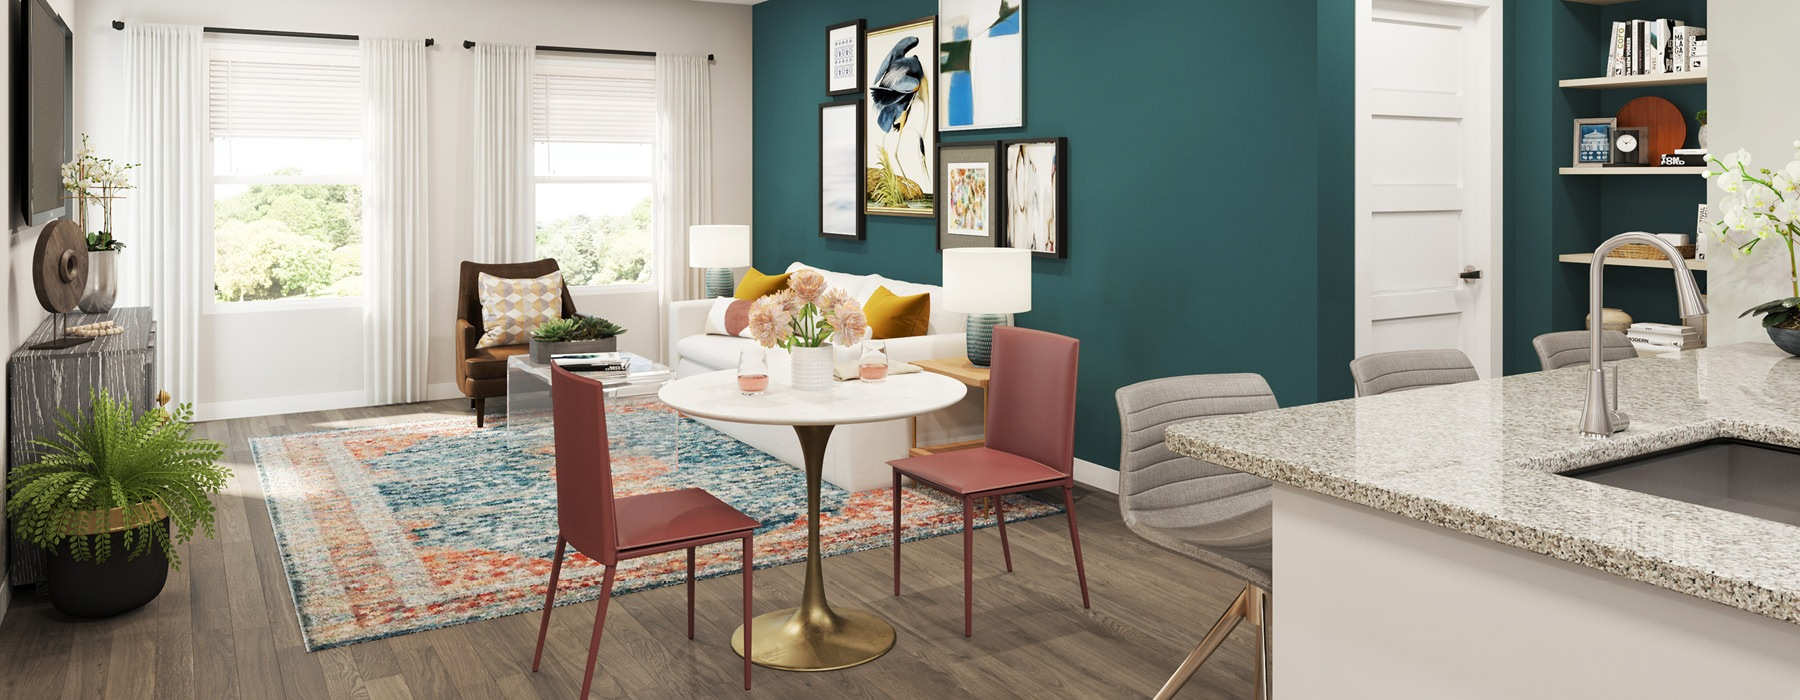 rendering of furnished and spacious apartment interior